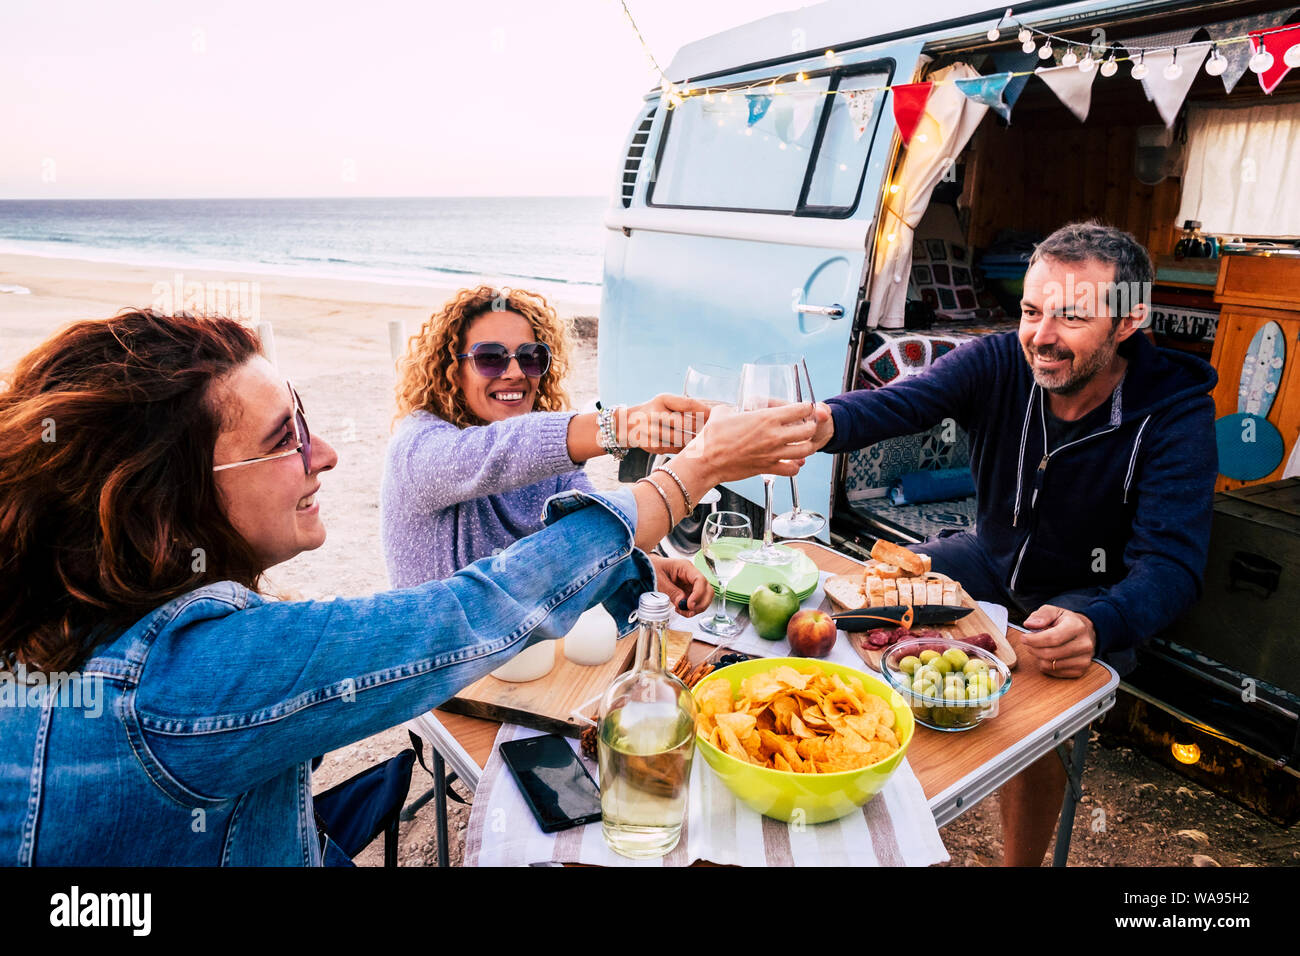 Happy people group of friends toasting and enjoying the travel vacation together - cheerful. womanandman with food in outdoor leisure activity - old v Stock Photo